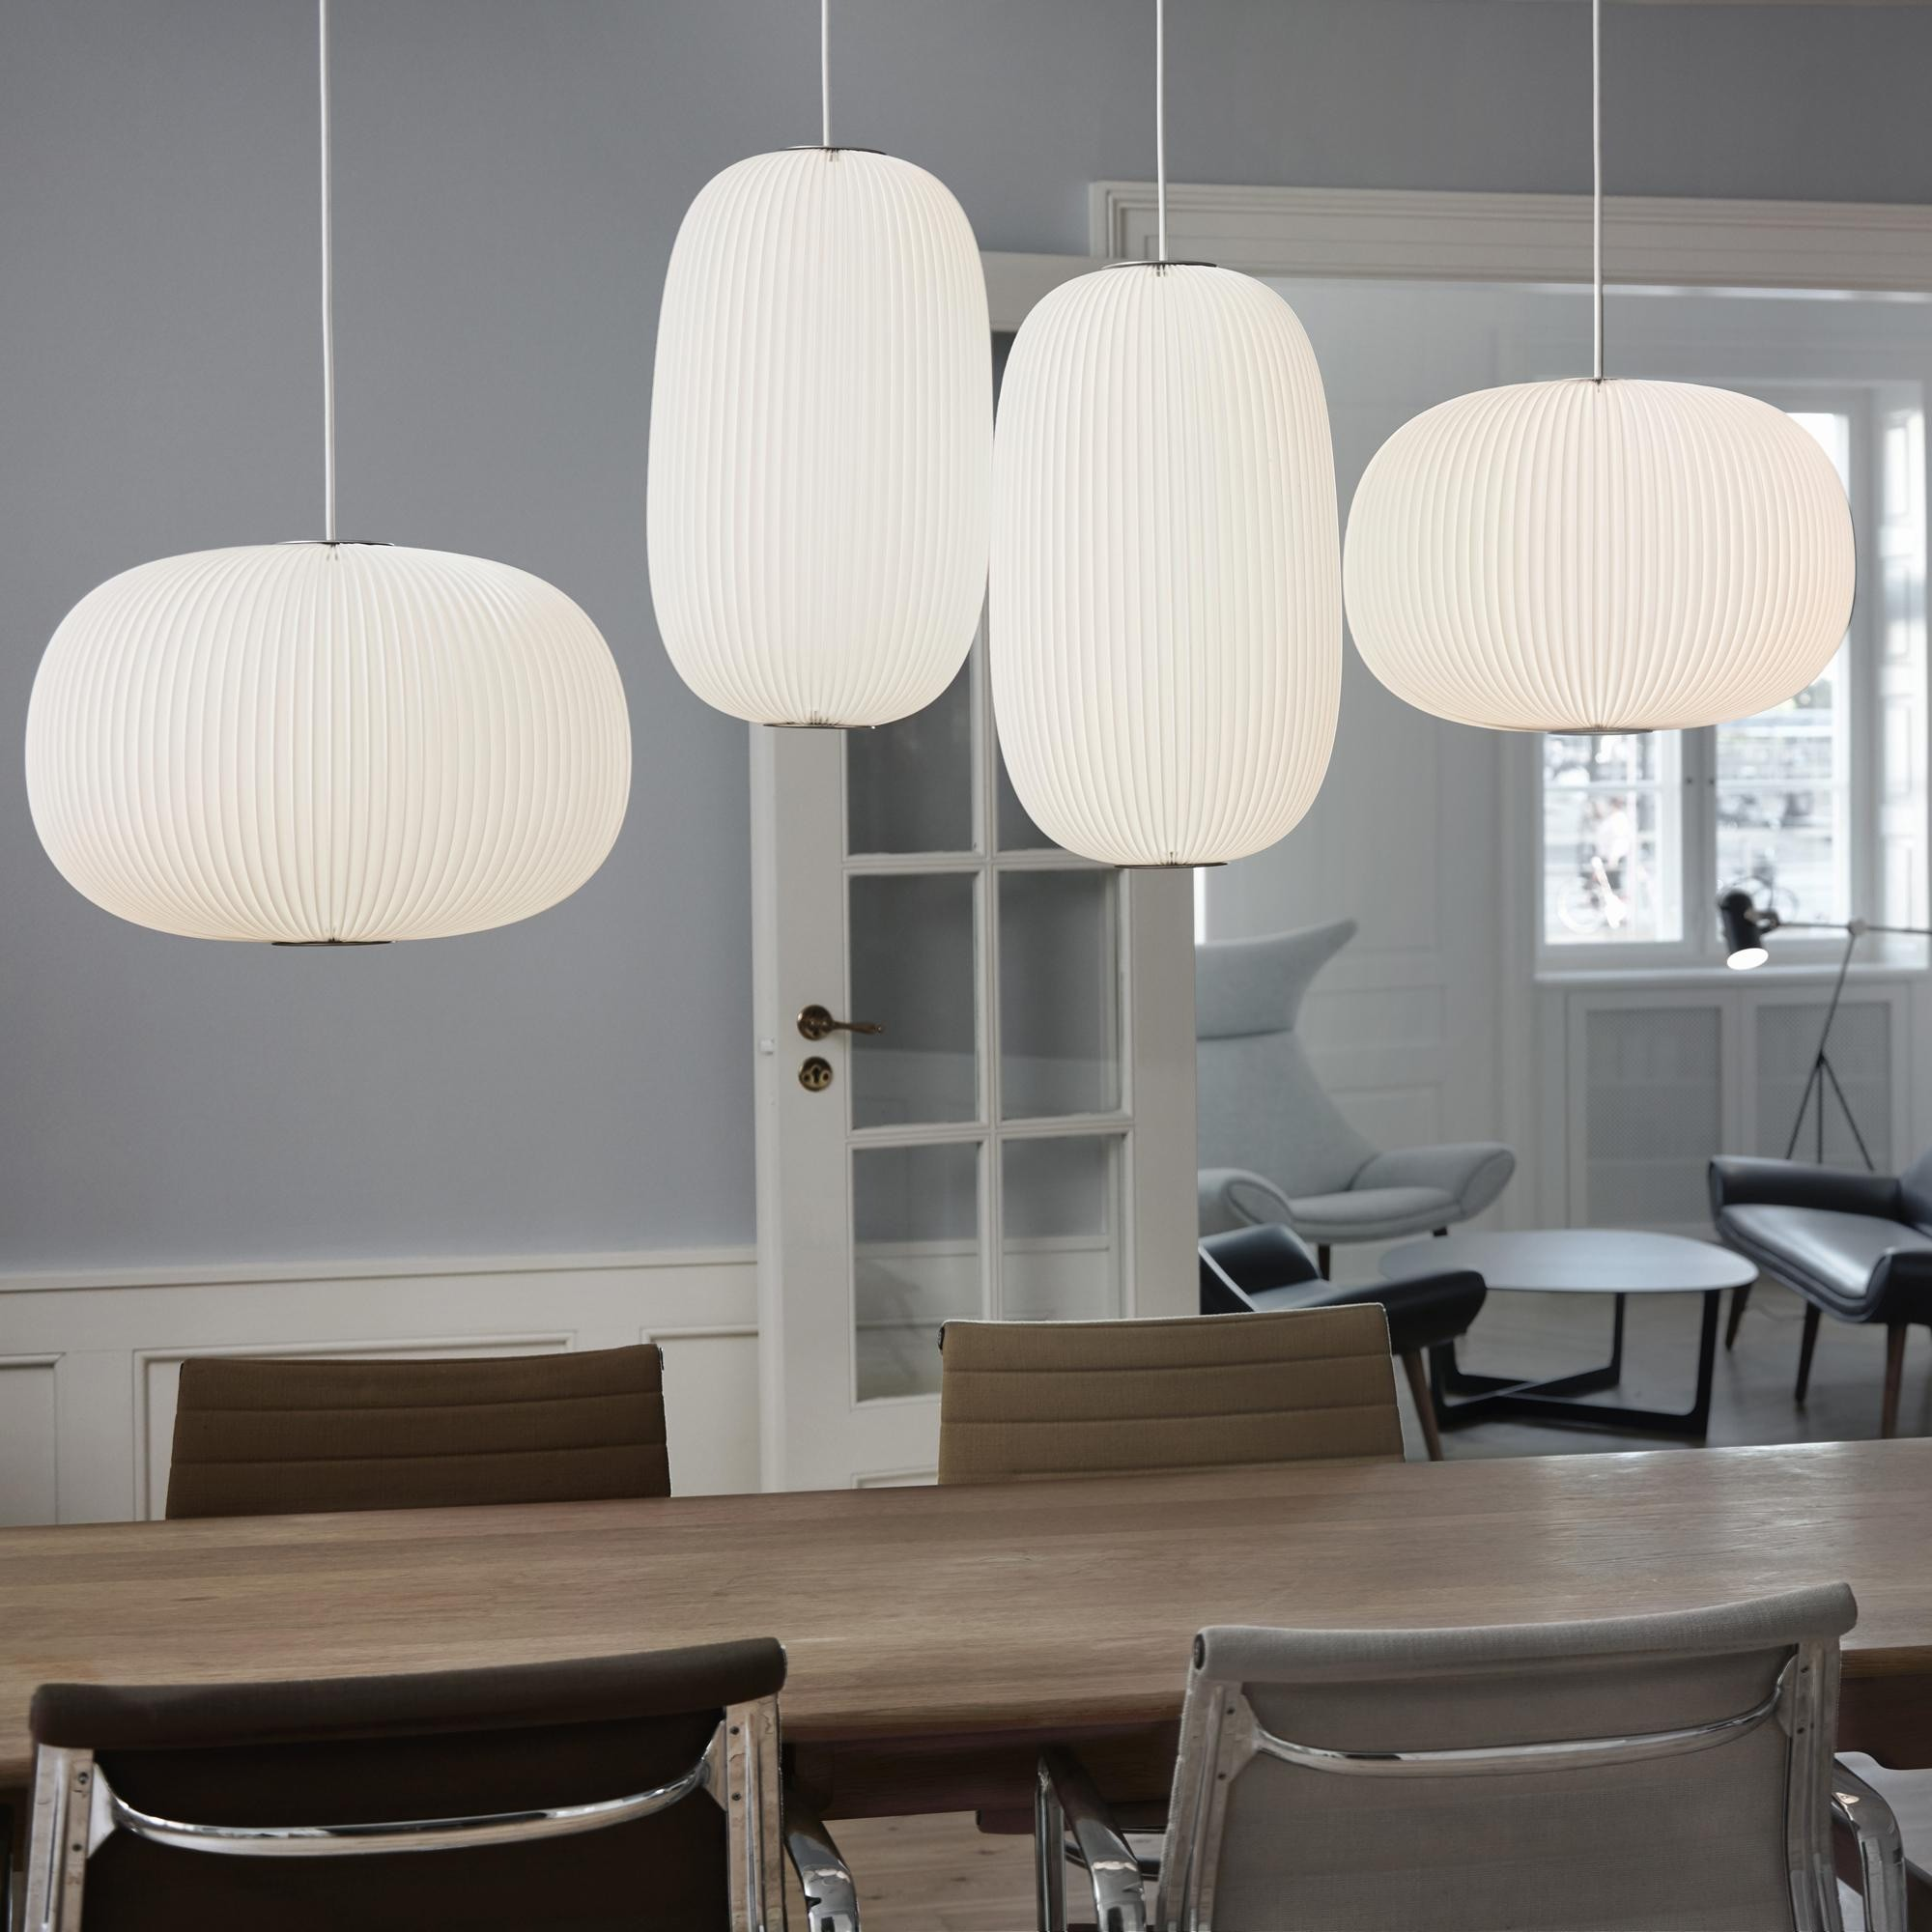 Lamella 2 Suspension Lamp